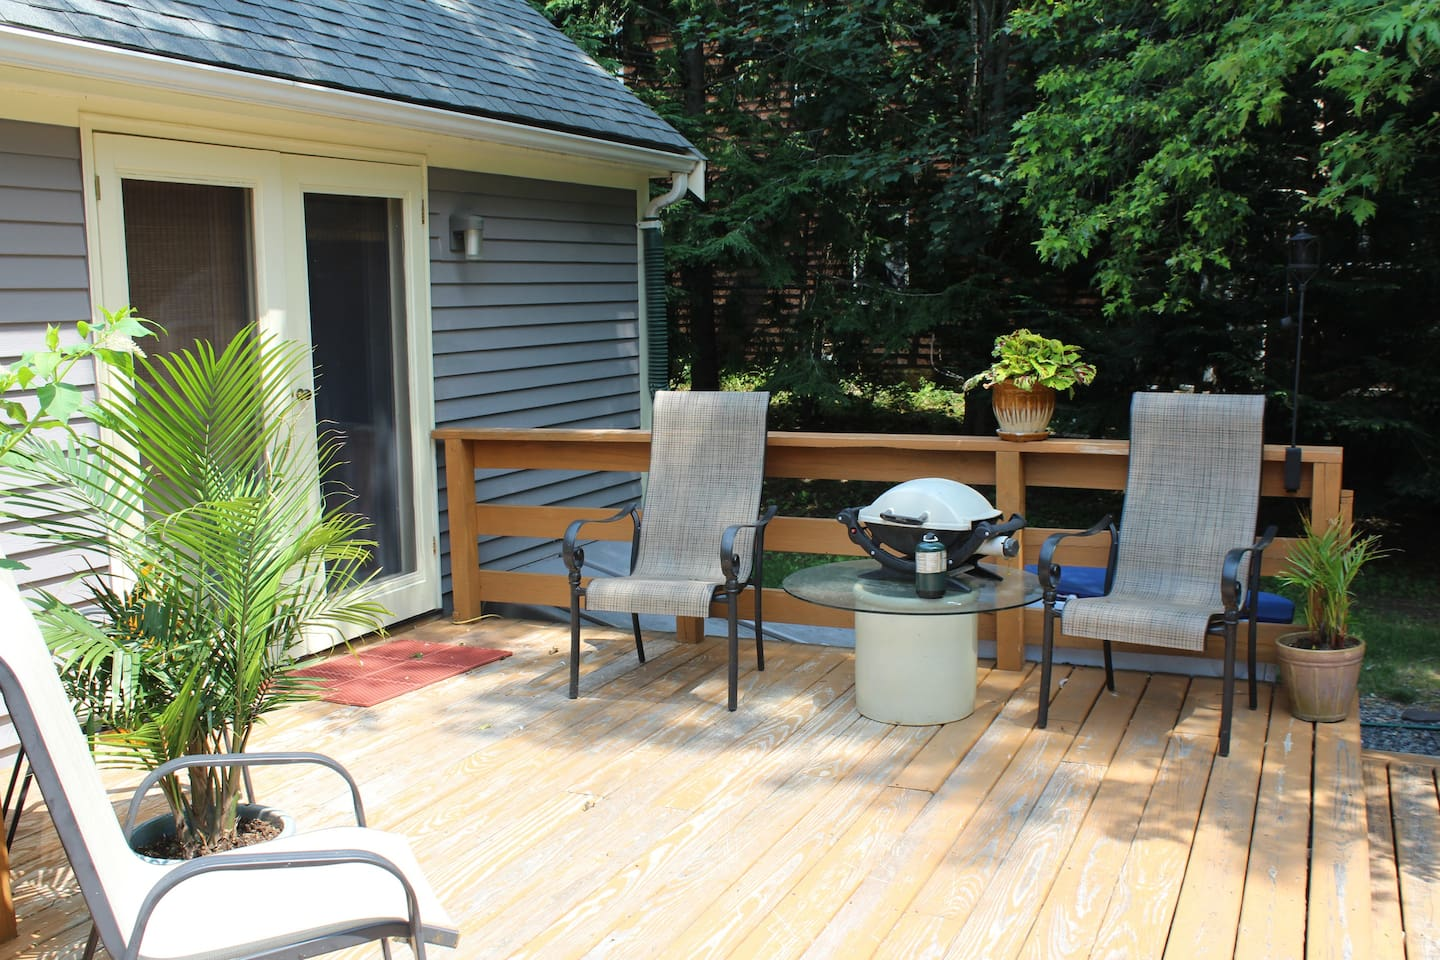 enjoy deck with sitting area and gas grill